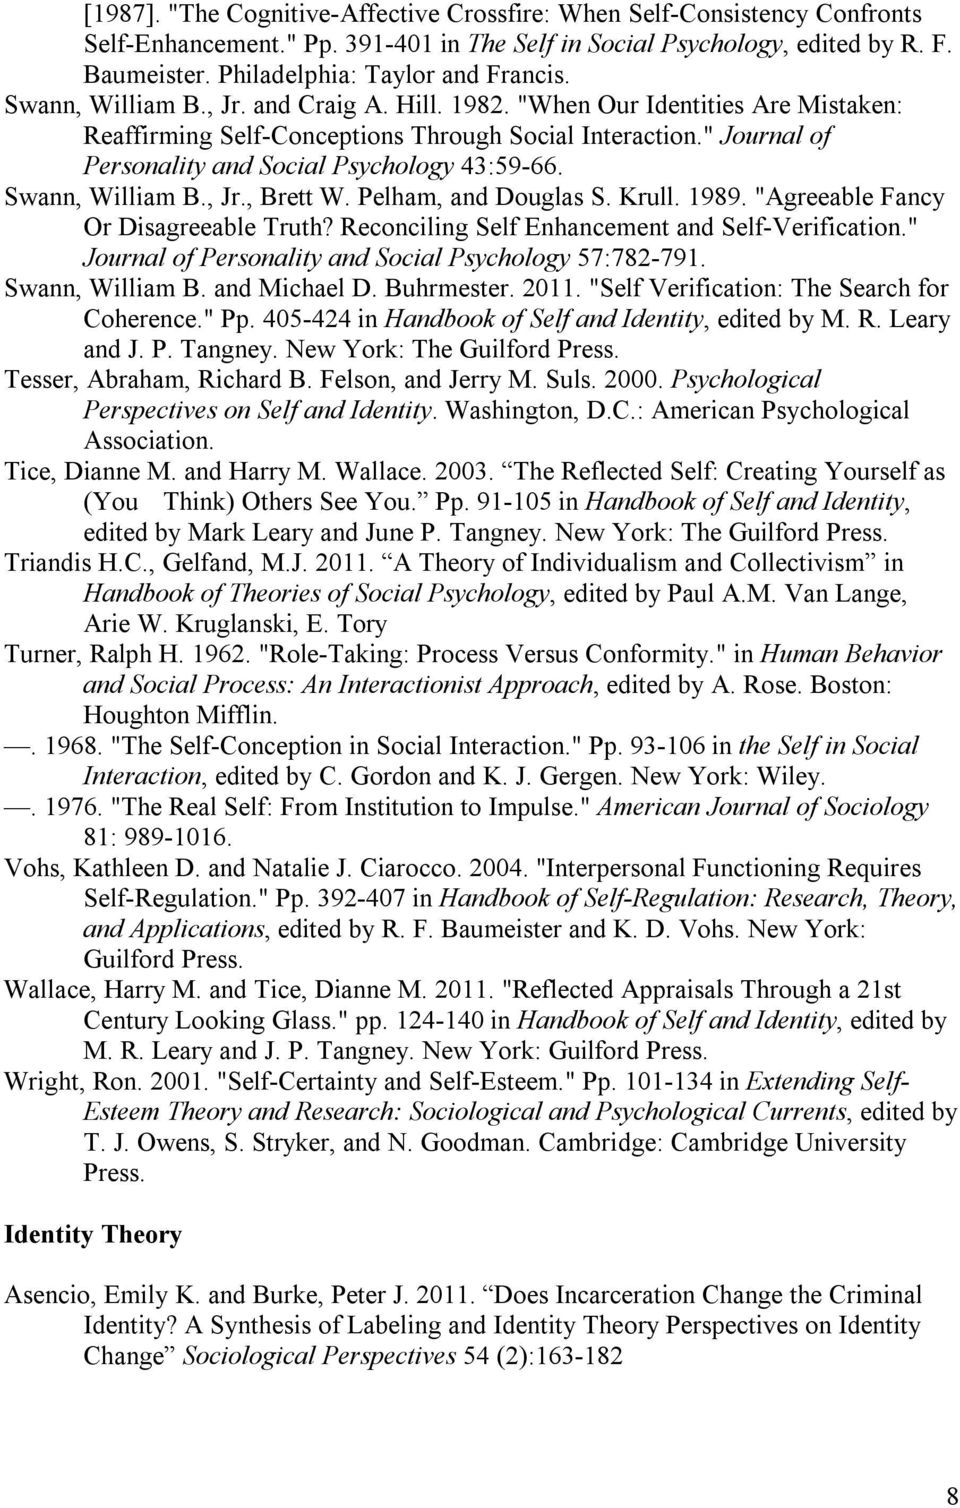 """ Journal of Personality and Social Psychology 43:59-66. Swann, William B., Jr., Brett W. Pelham, and Douglas S. Krull. 1989. ""Agreeable Fancy Or Disagreeable Truth?"